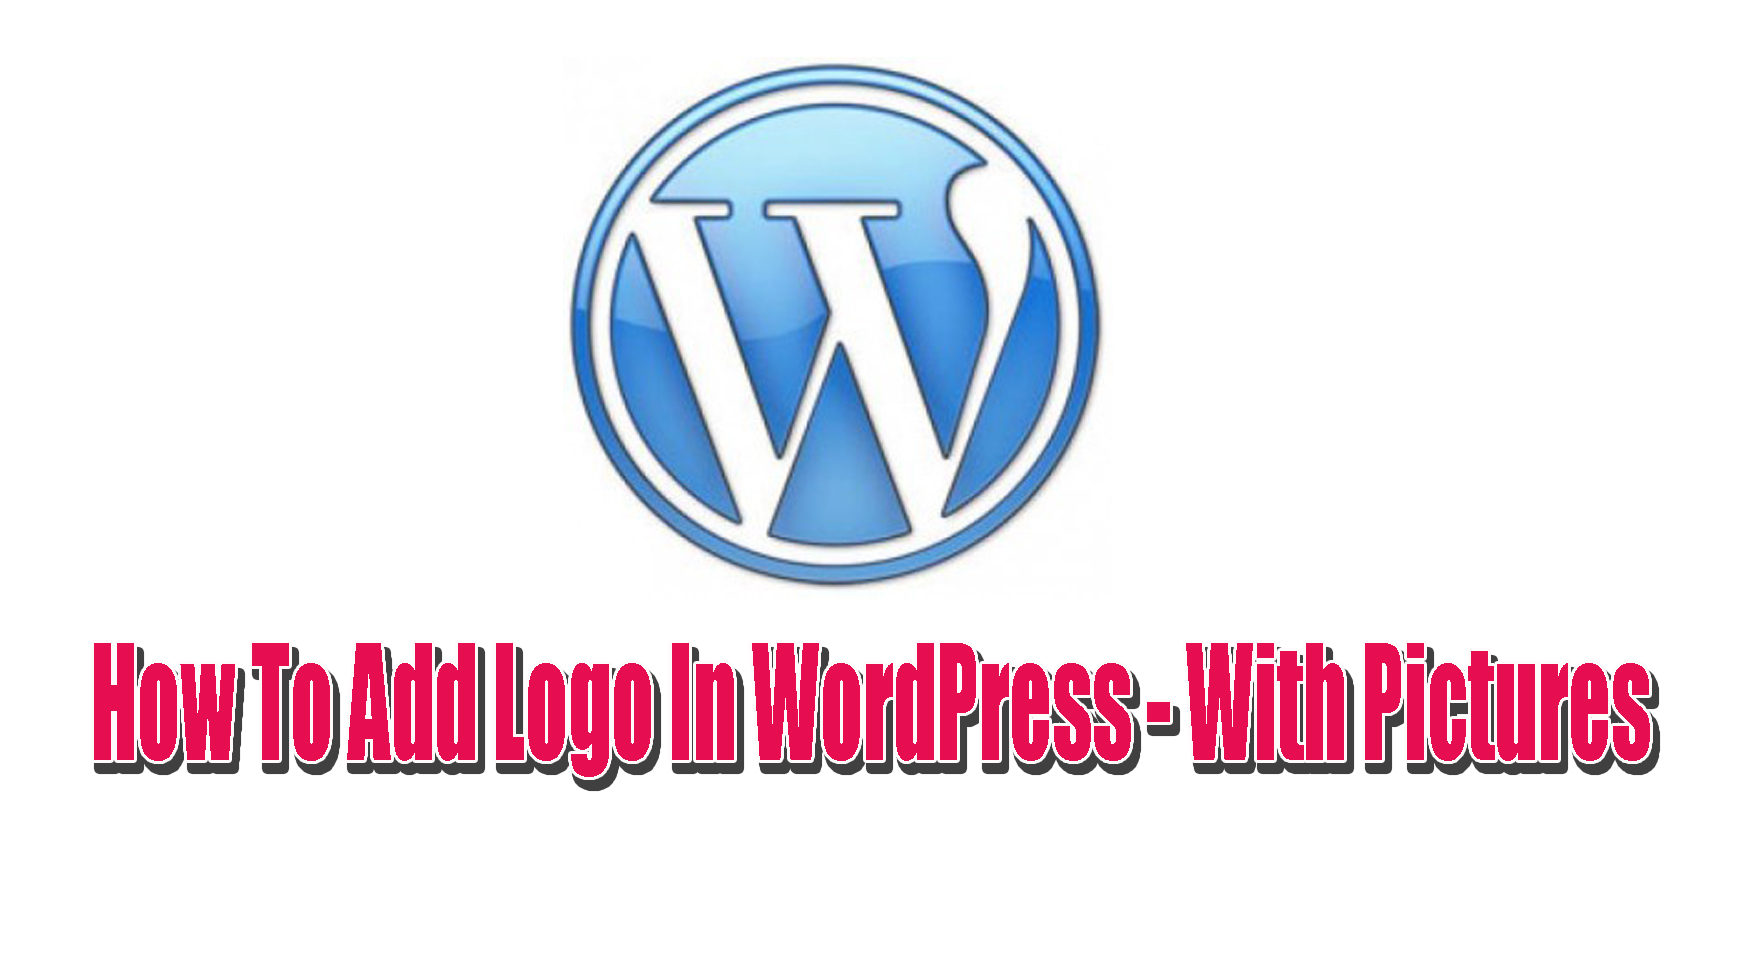 how to add logo in wordpress website with pictures